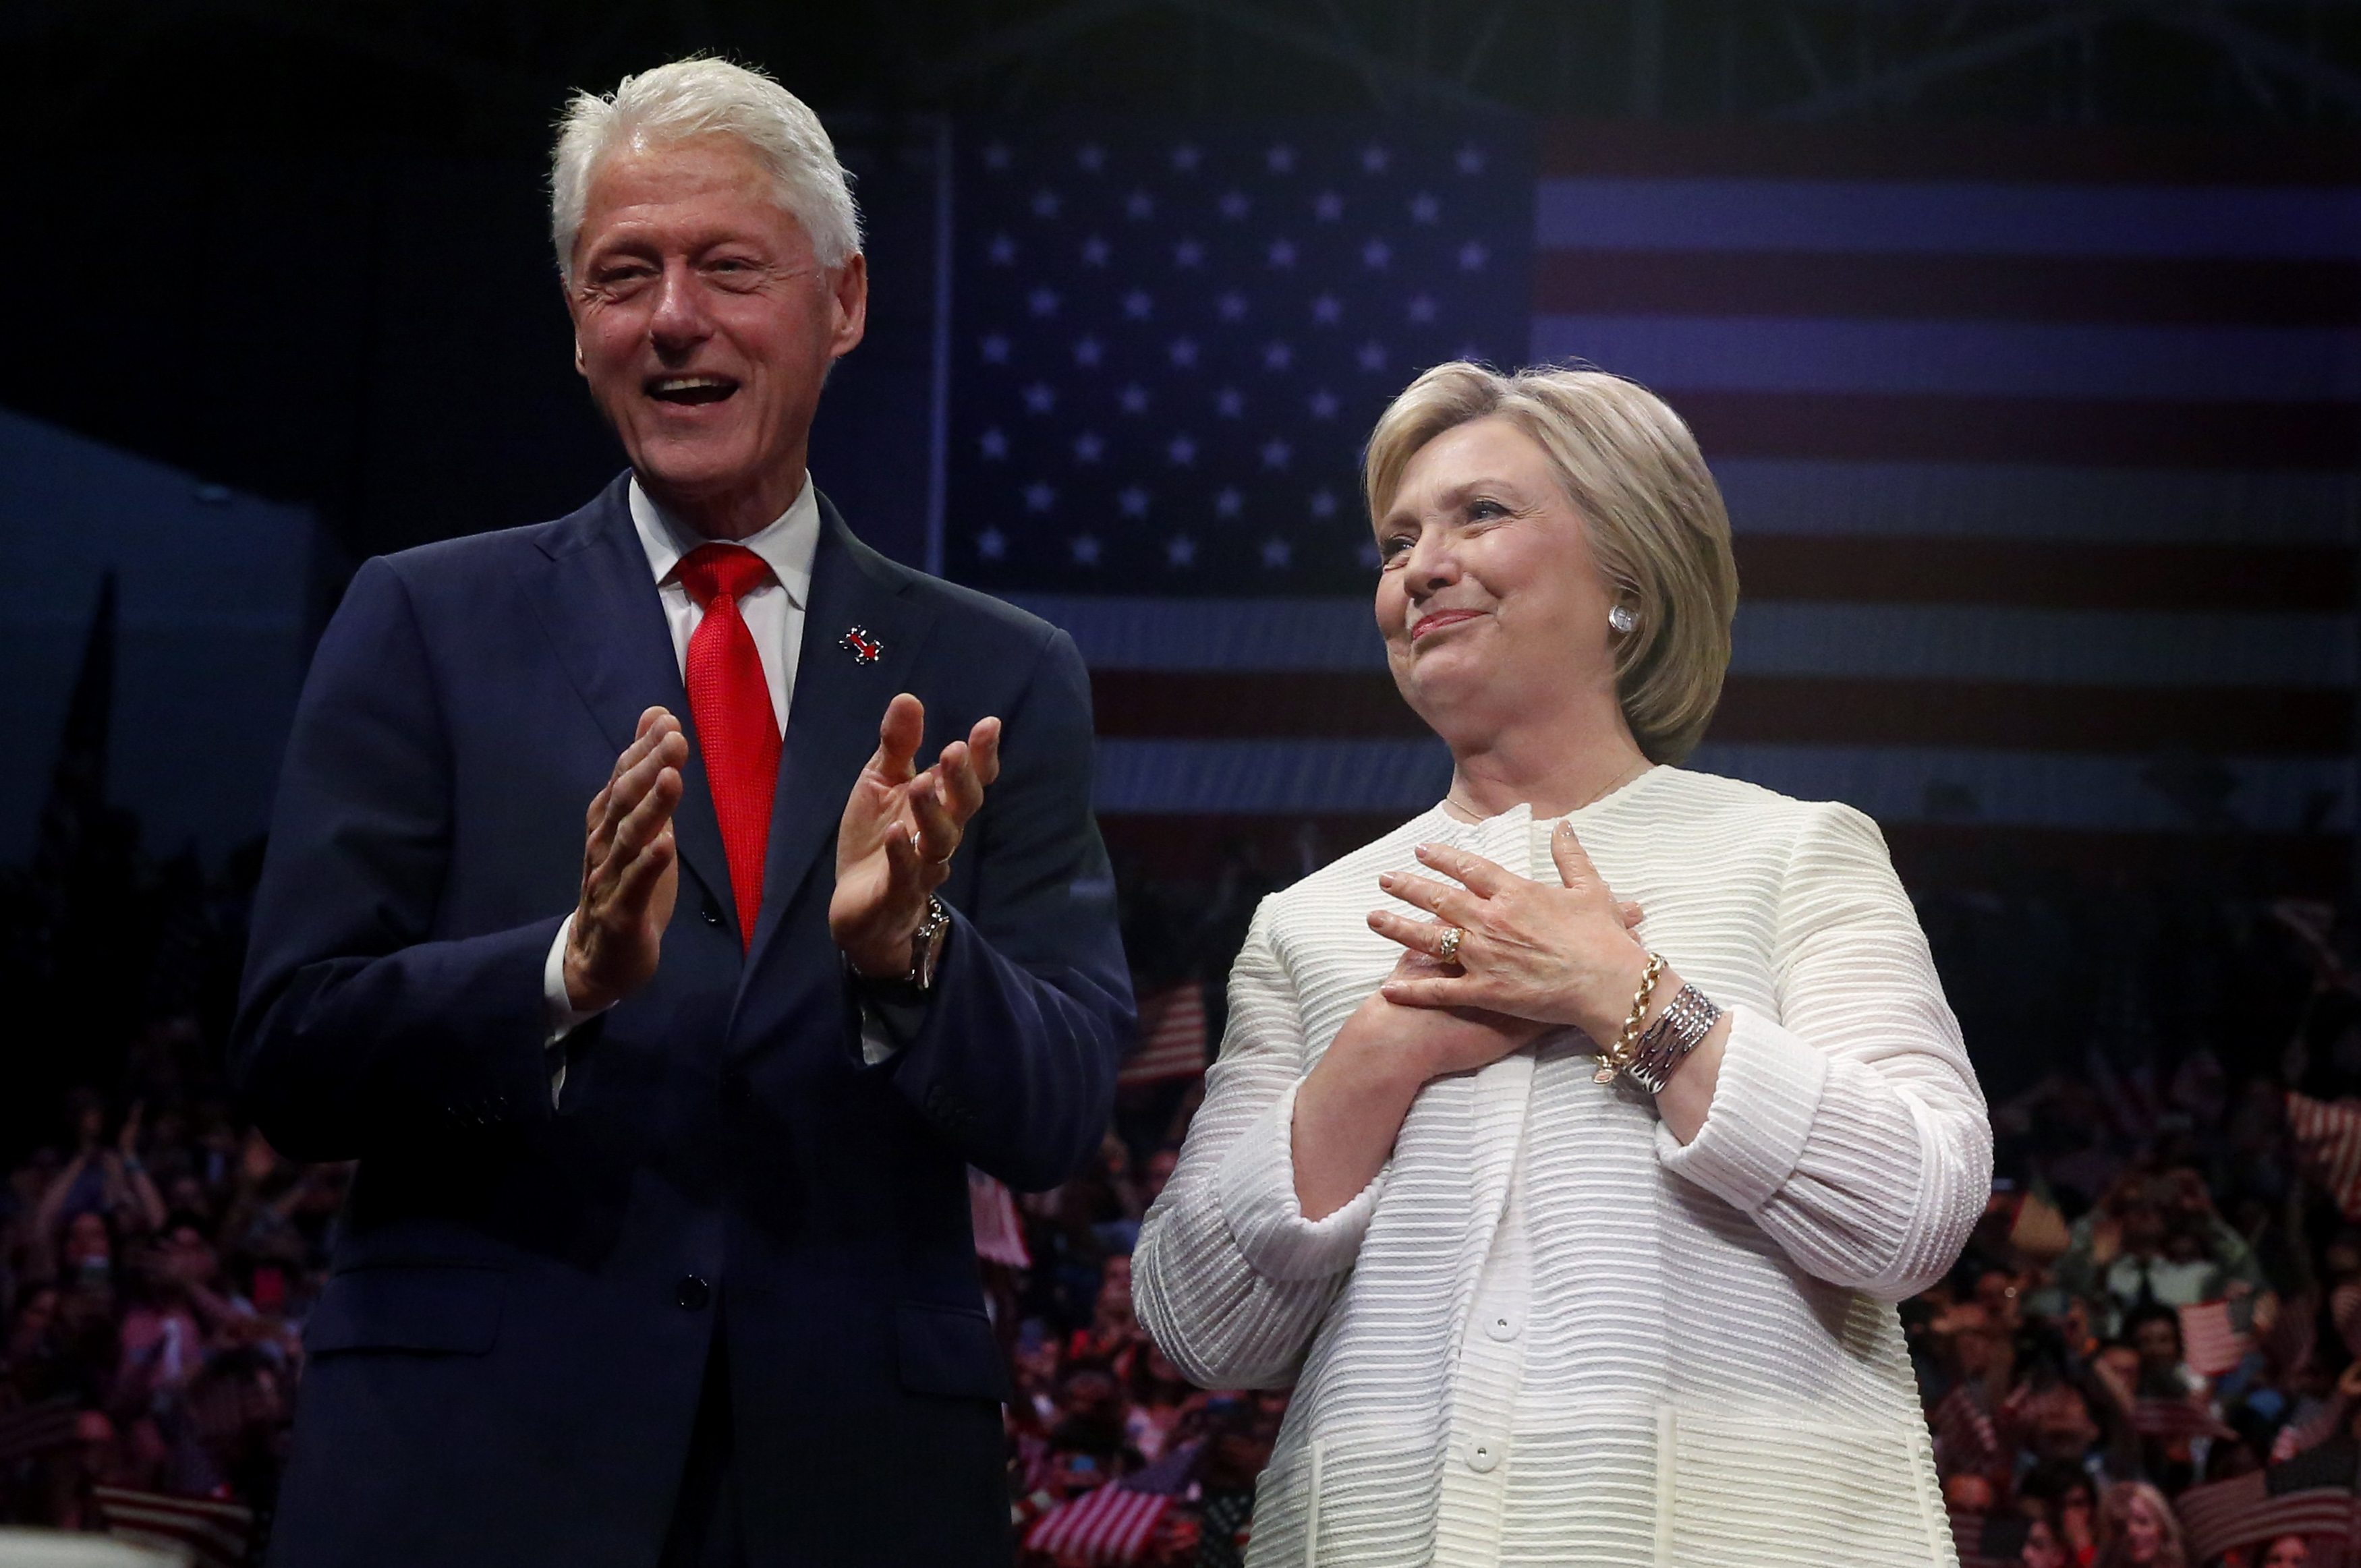 Democratic U.S. presidential candidate Hillary Clinton stands onstage with her husband former President Bill Clinton (L) after speaking during her California primary night rally held in the Brooklyn borough of New York, U.S., June 7, 2016. REUTERS/Shannon Stapleton